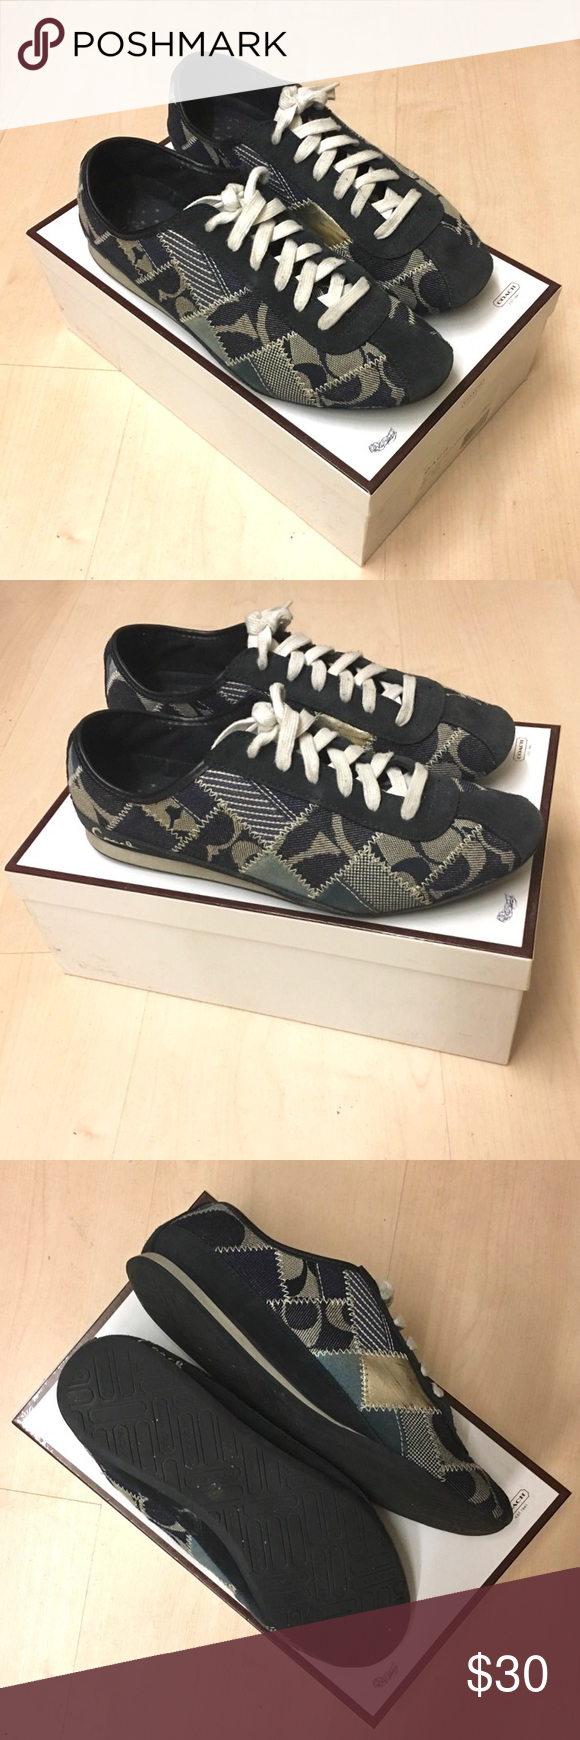 COACH Patchwork Sneakers (Size 9M) Coach Tidy Signature Patchwork Sneakers in Navy in size 9M with Box Coach Shoes Sneakers